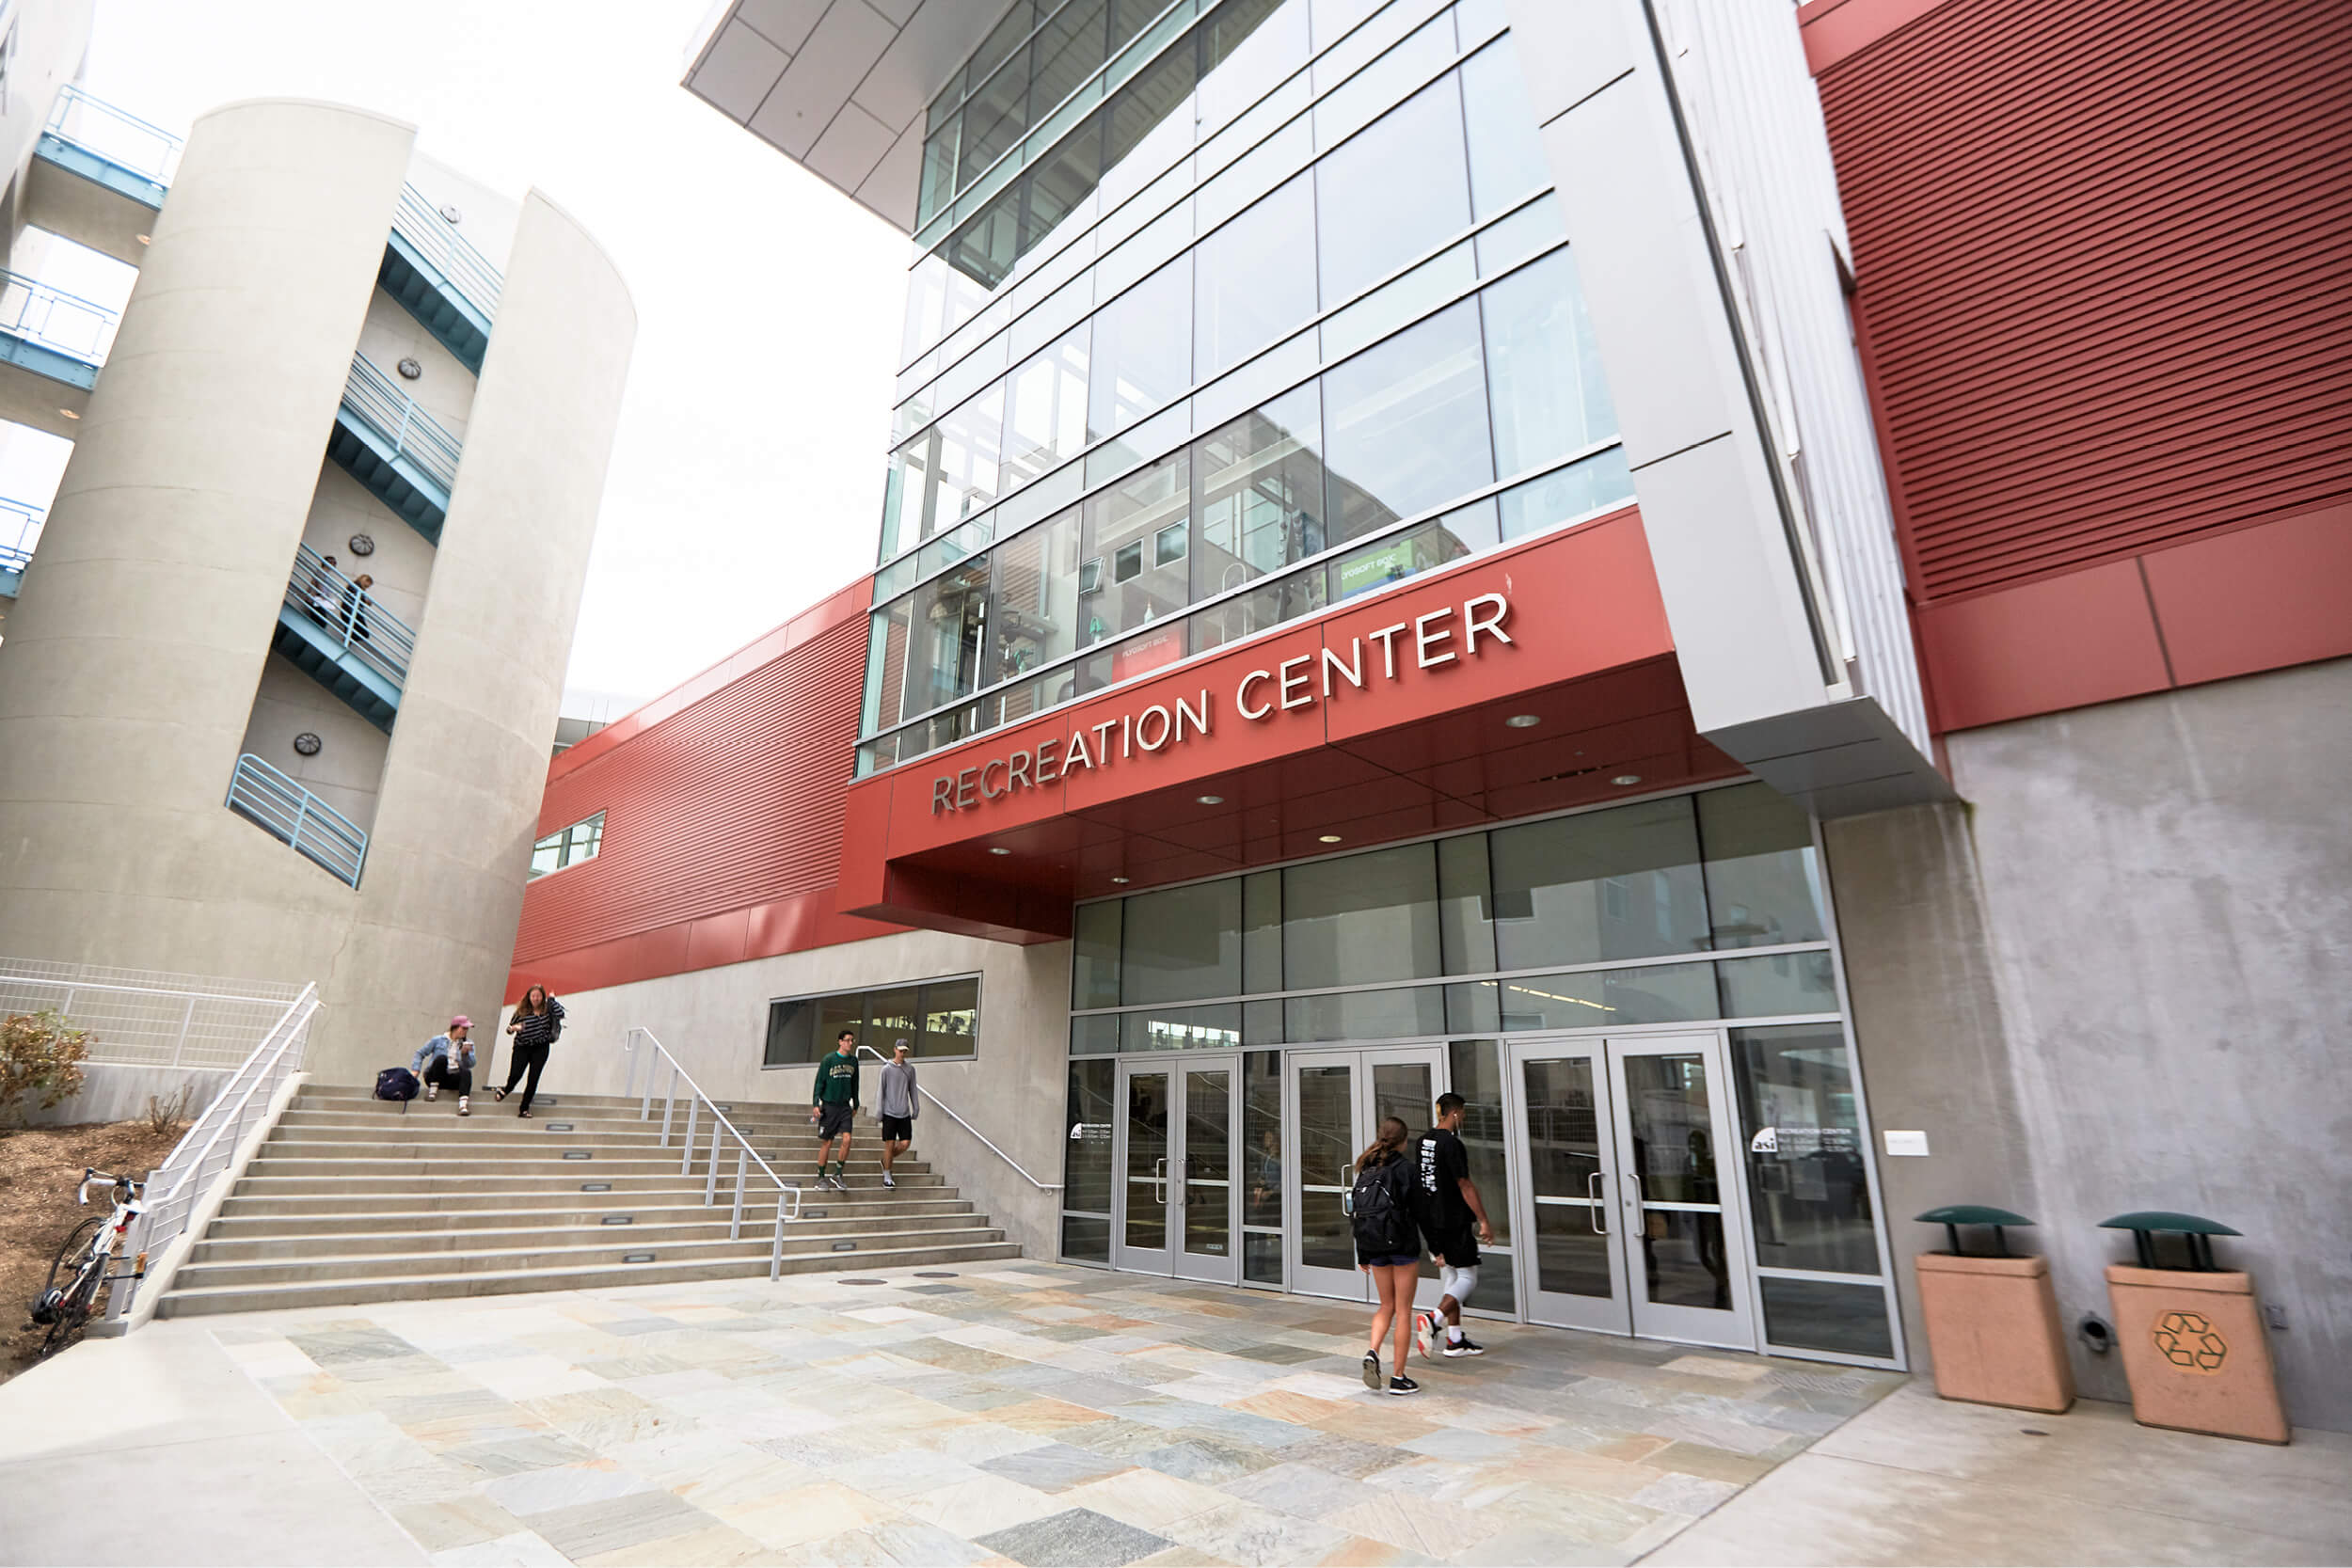 Students entering the Recreation Center